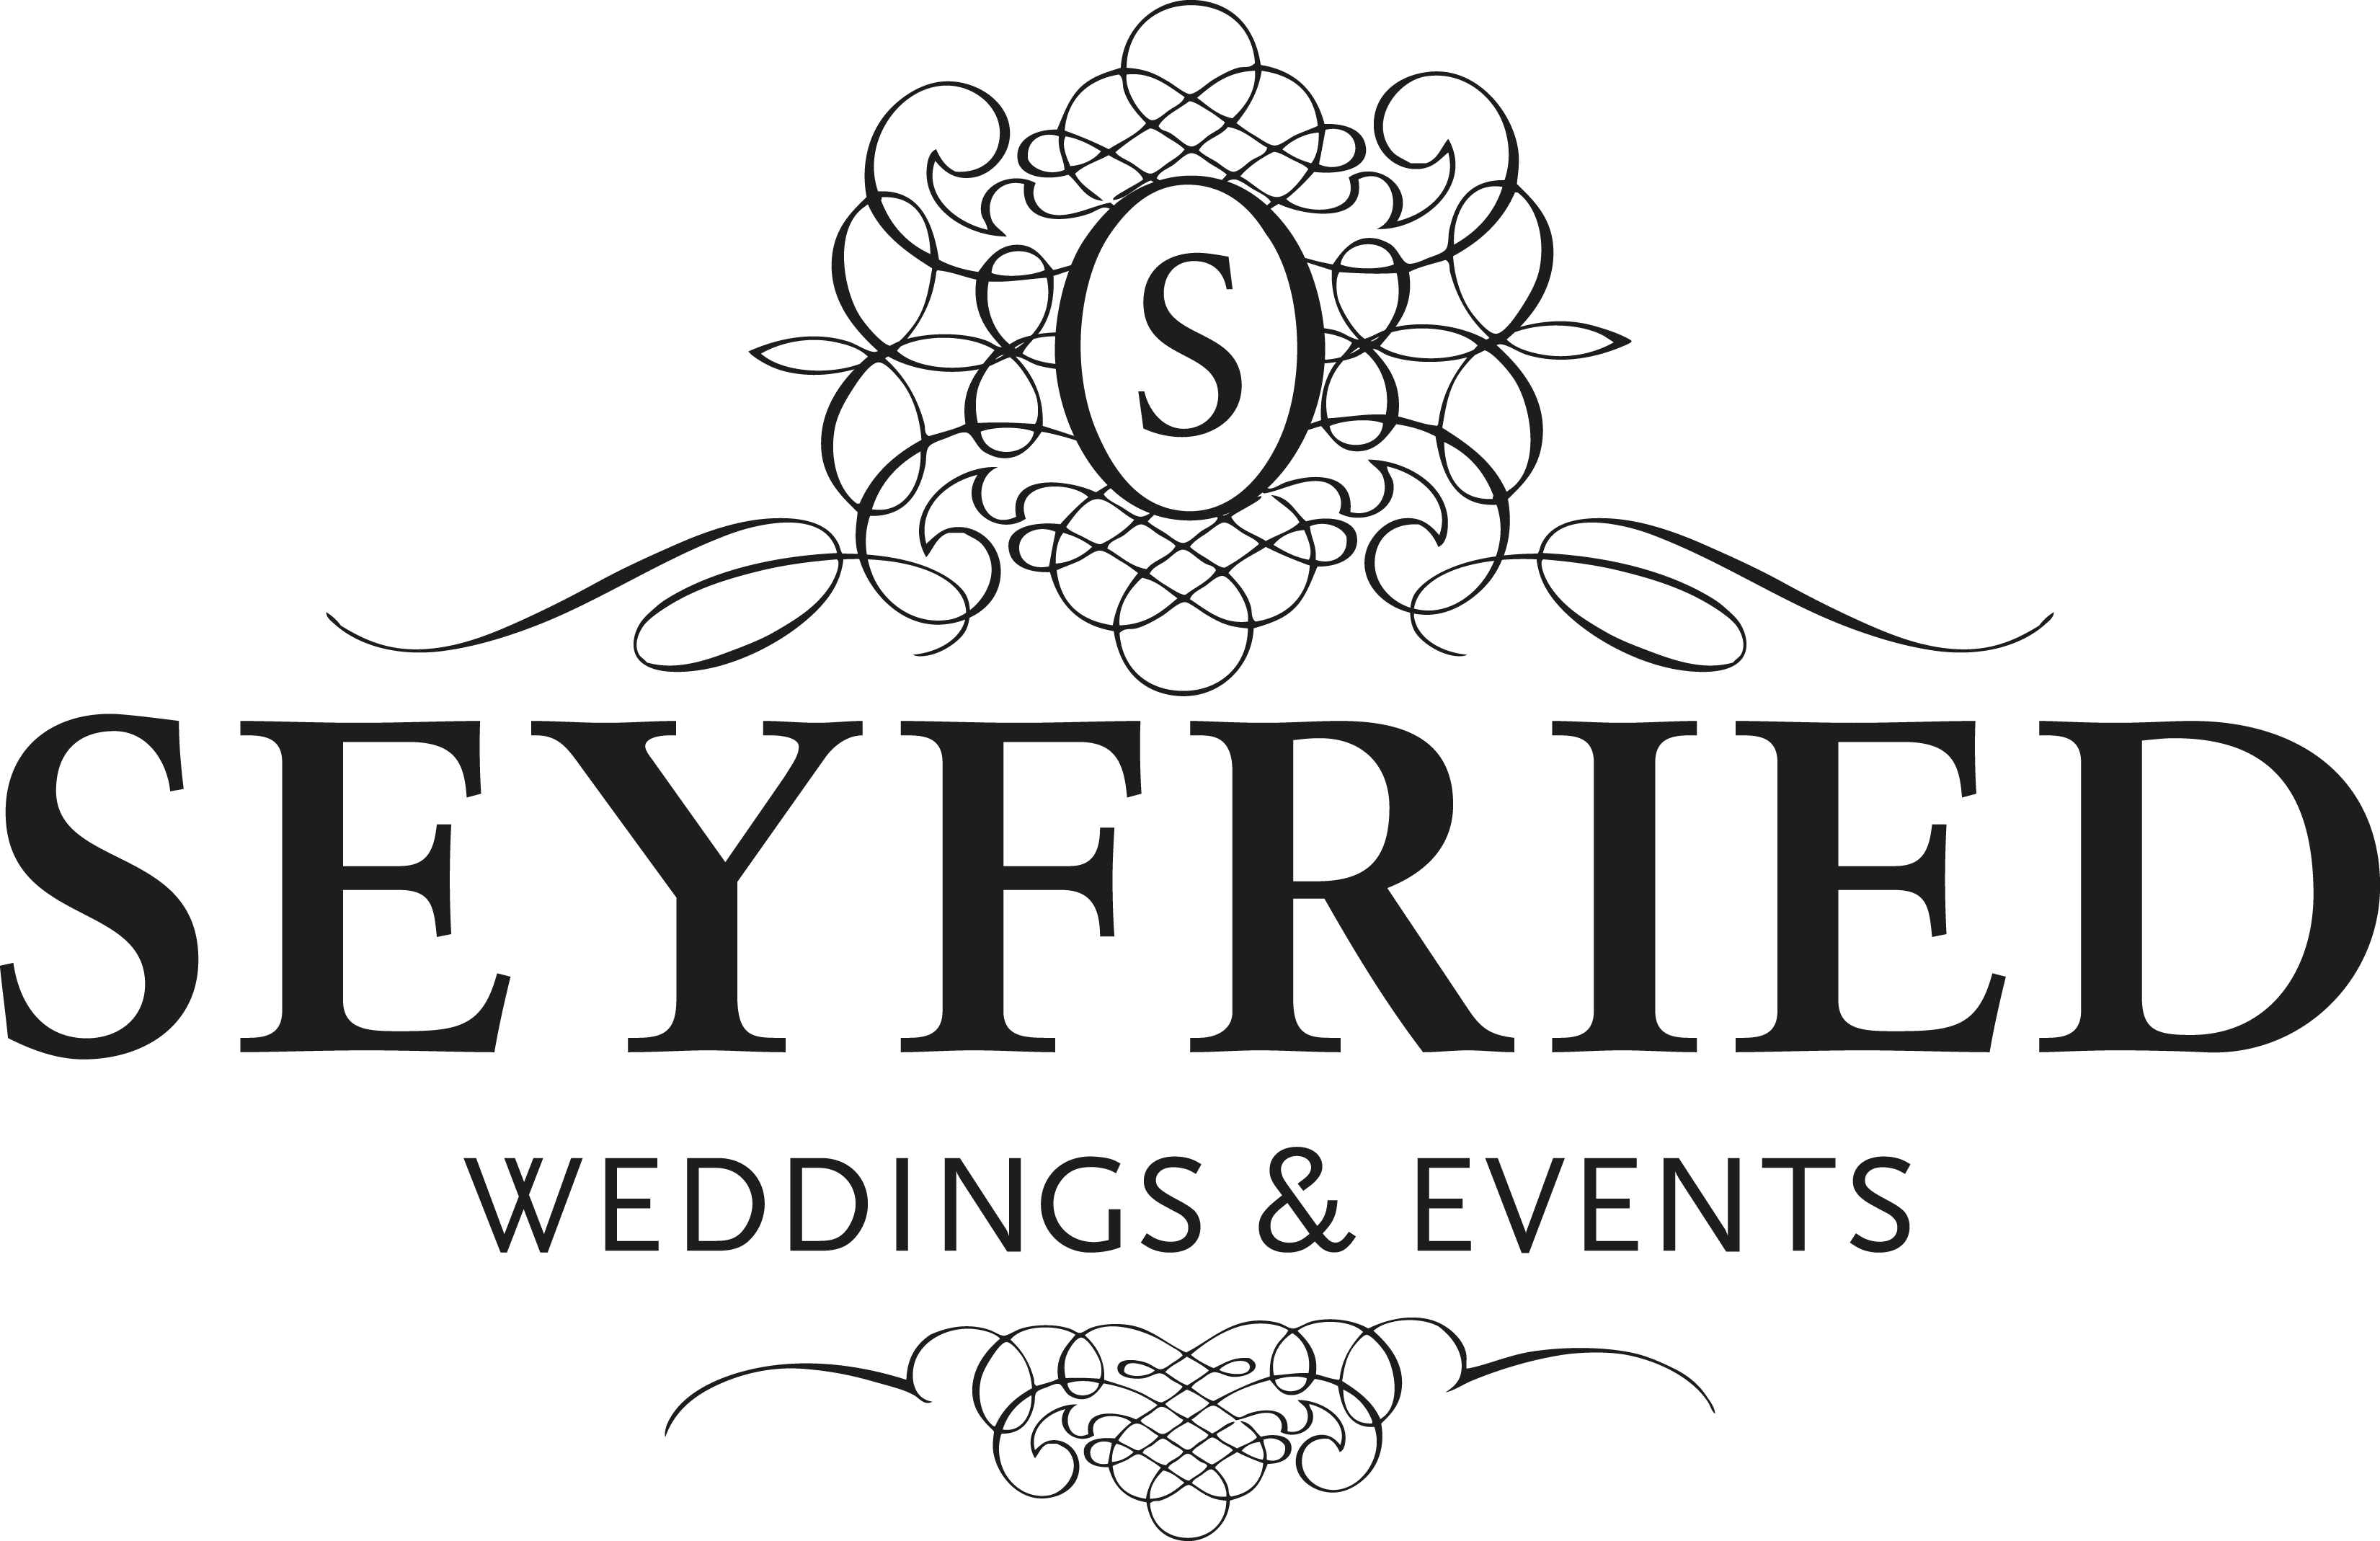 Seyfried Weddings und Events